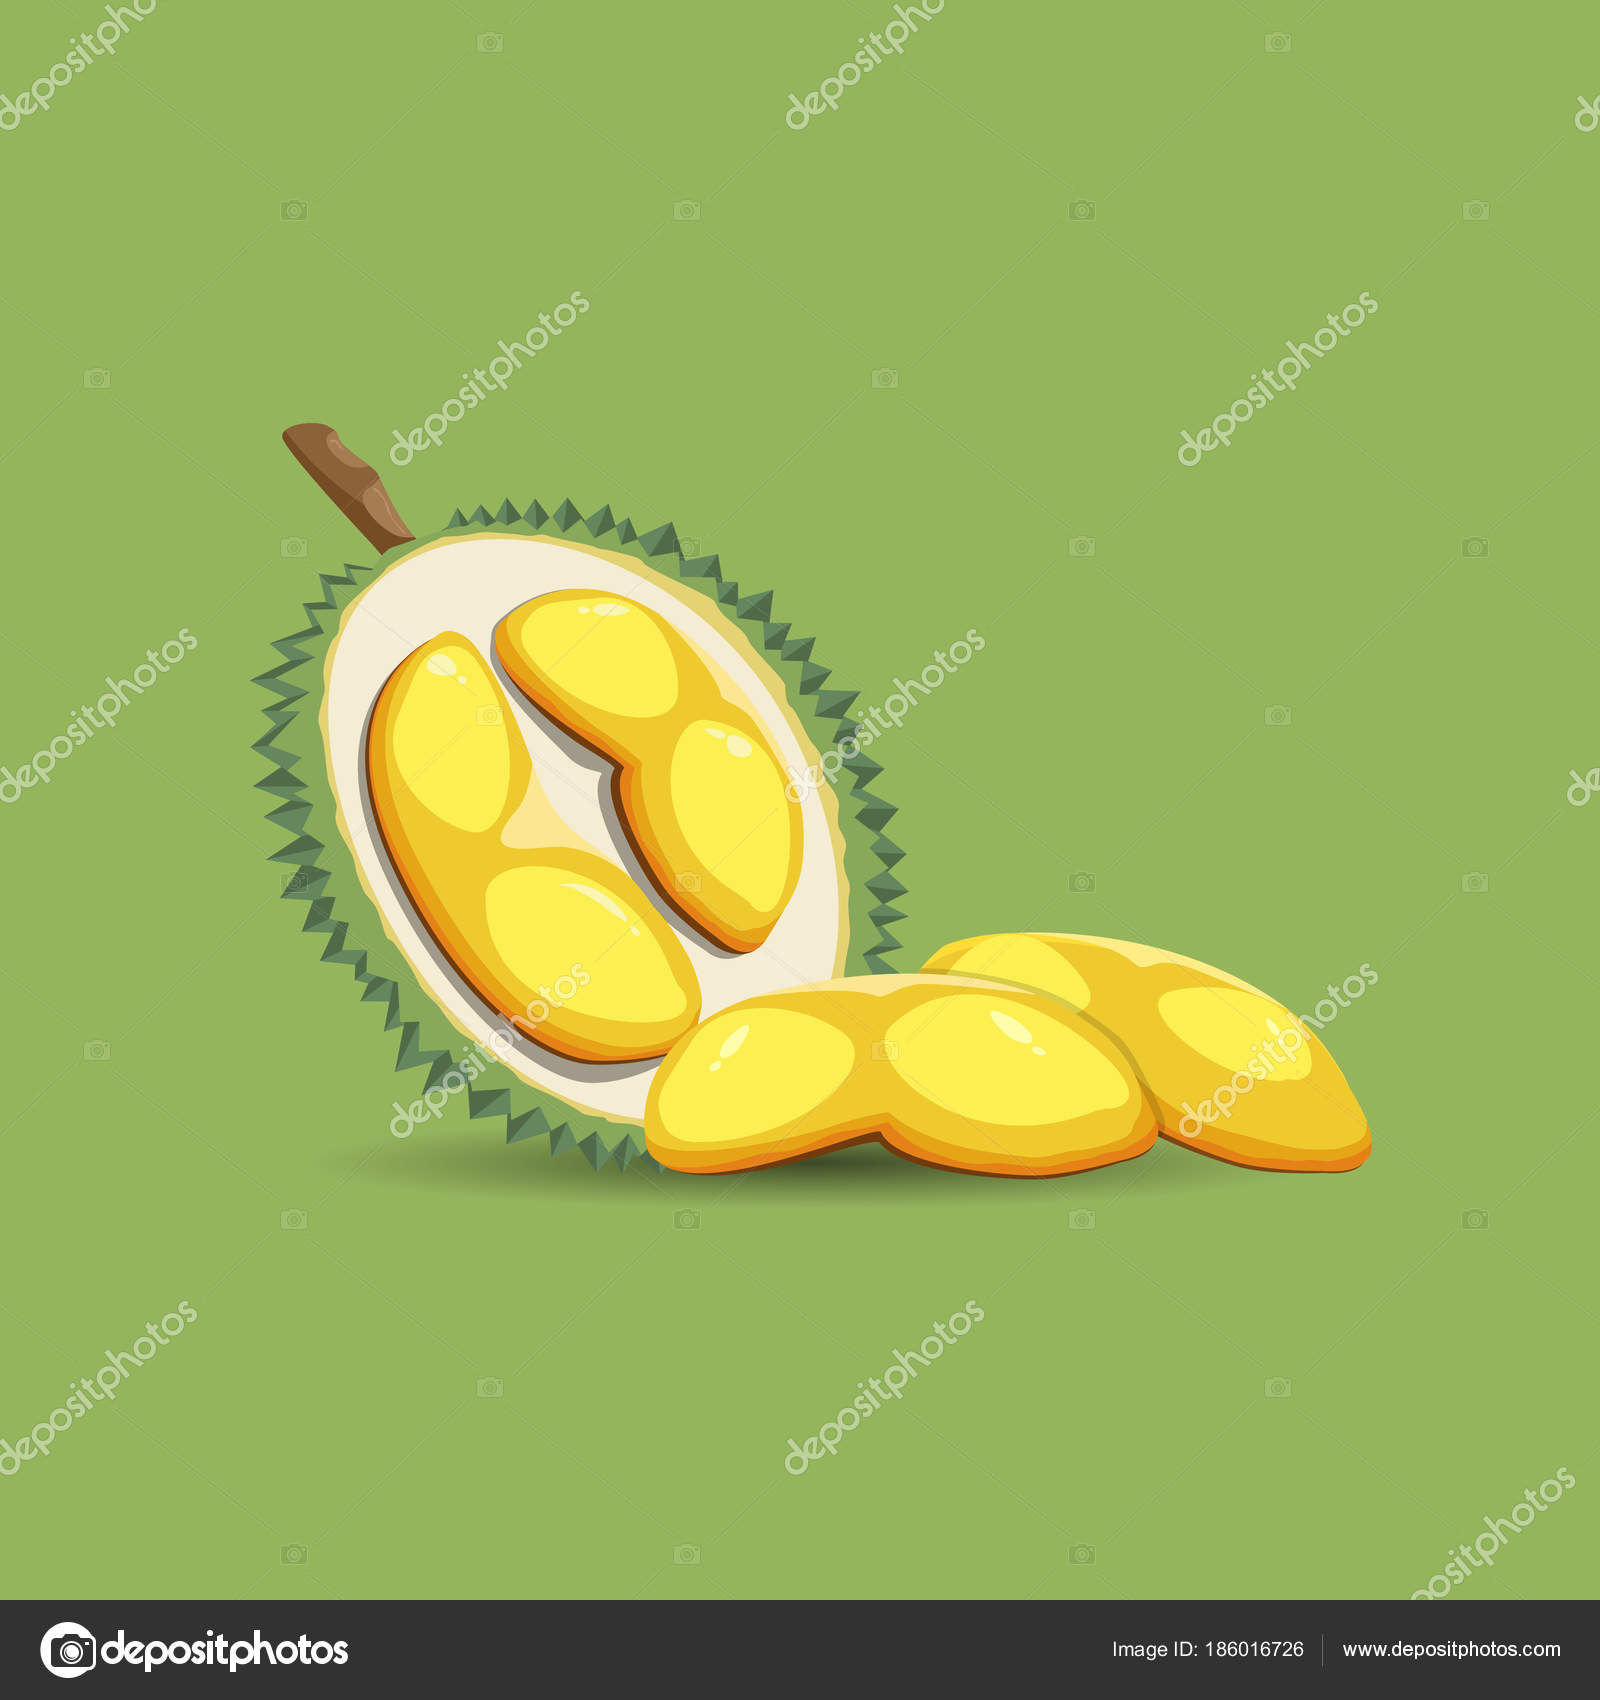 exotic fruit durian on a green background. a half of fresh, organic